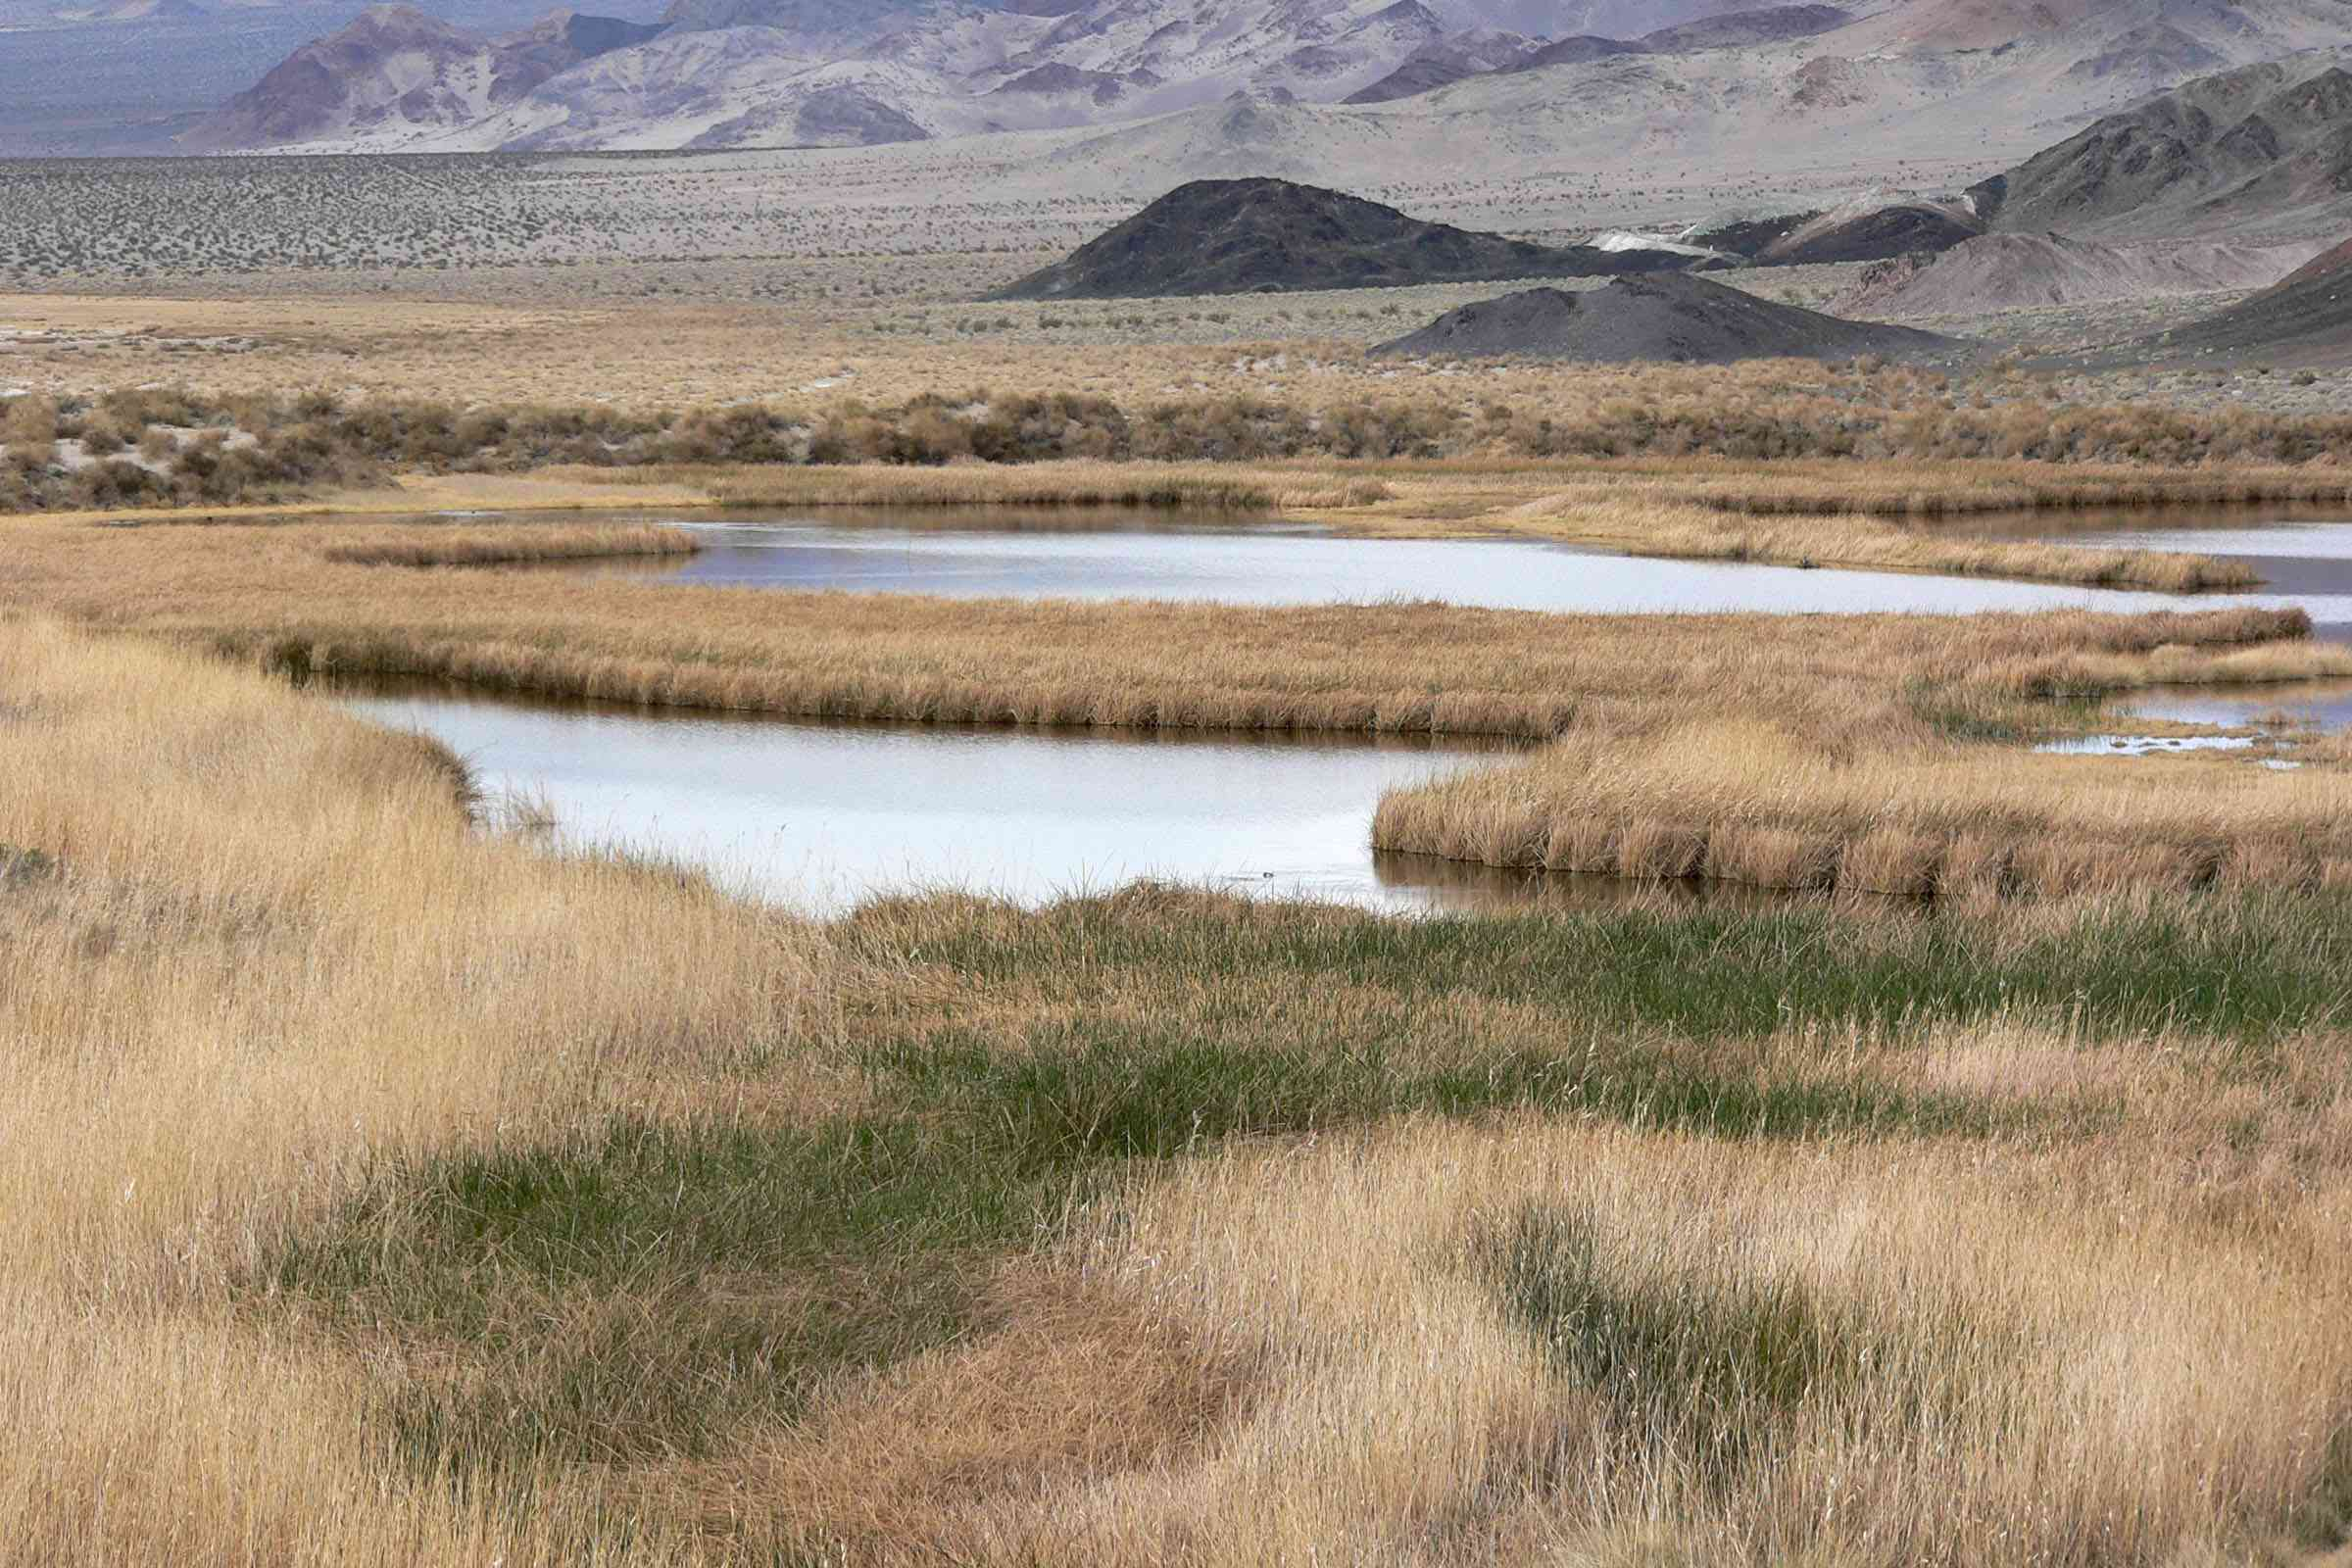 Saratoga Spring surrounded by the mountains and flat grasslands of Death Valley